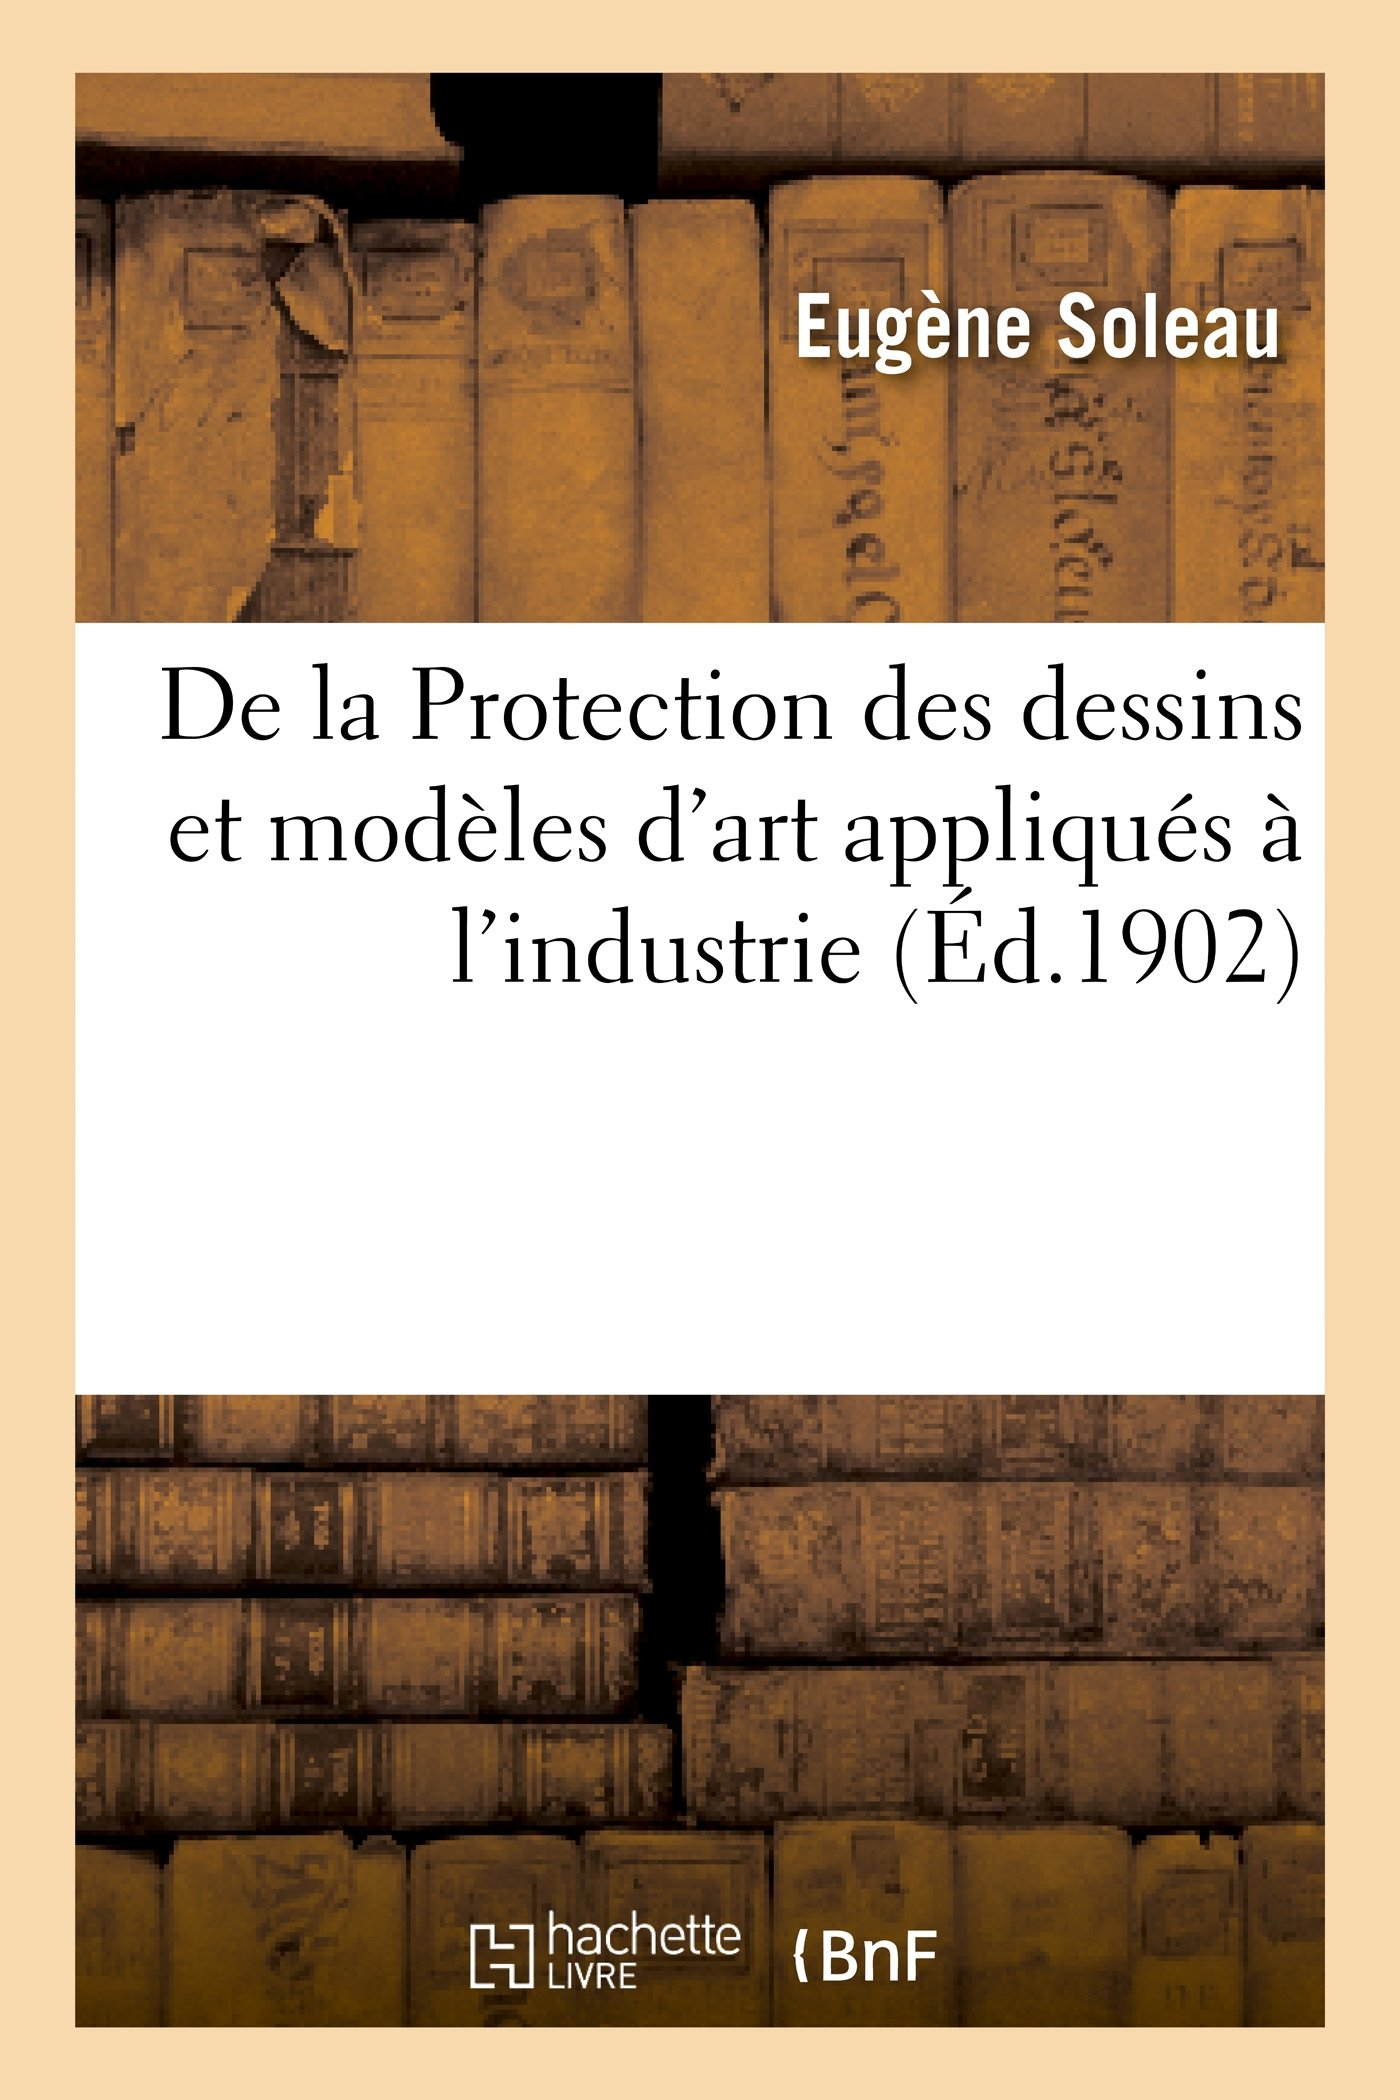 Download de La Protection Des Dessins Et Modeles D'Art Appliques A L'Industrie, Rapport de E. Soleau (Arts) (French Edition) pdf